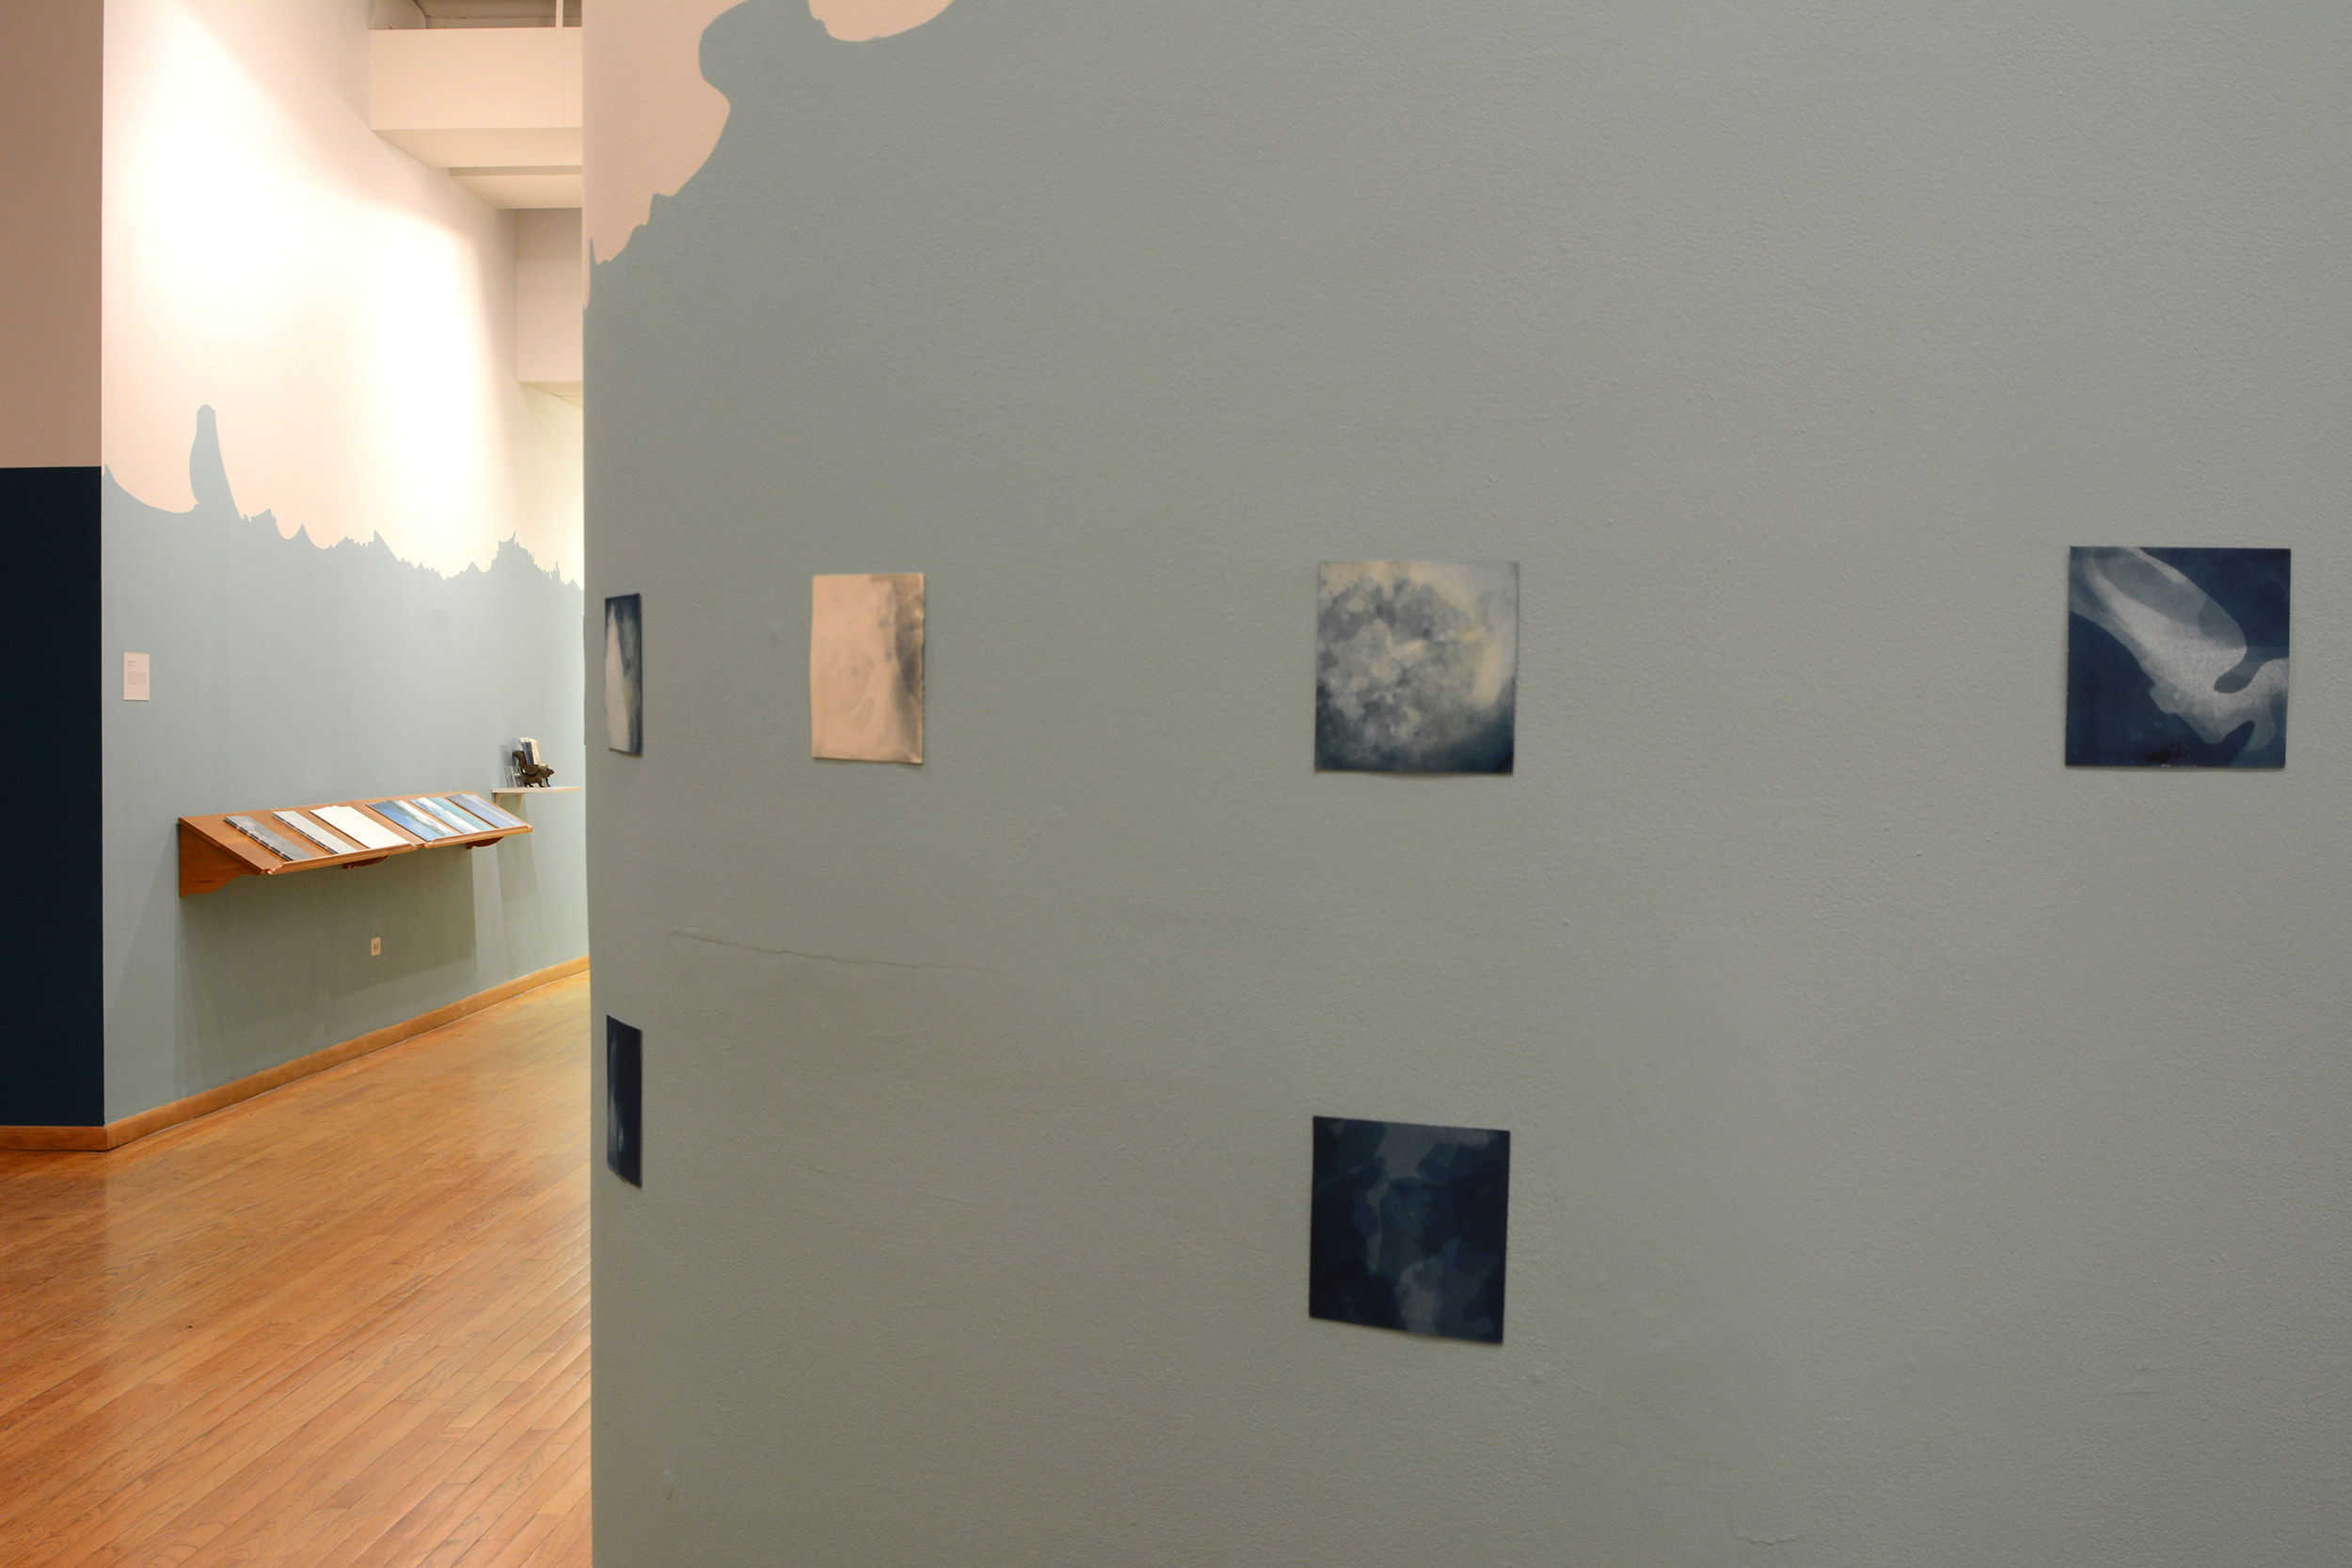 Installation view at the Center for Book, Paper, and Print at Columbia College Chicago.